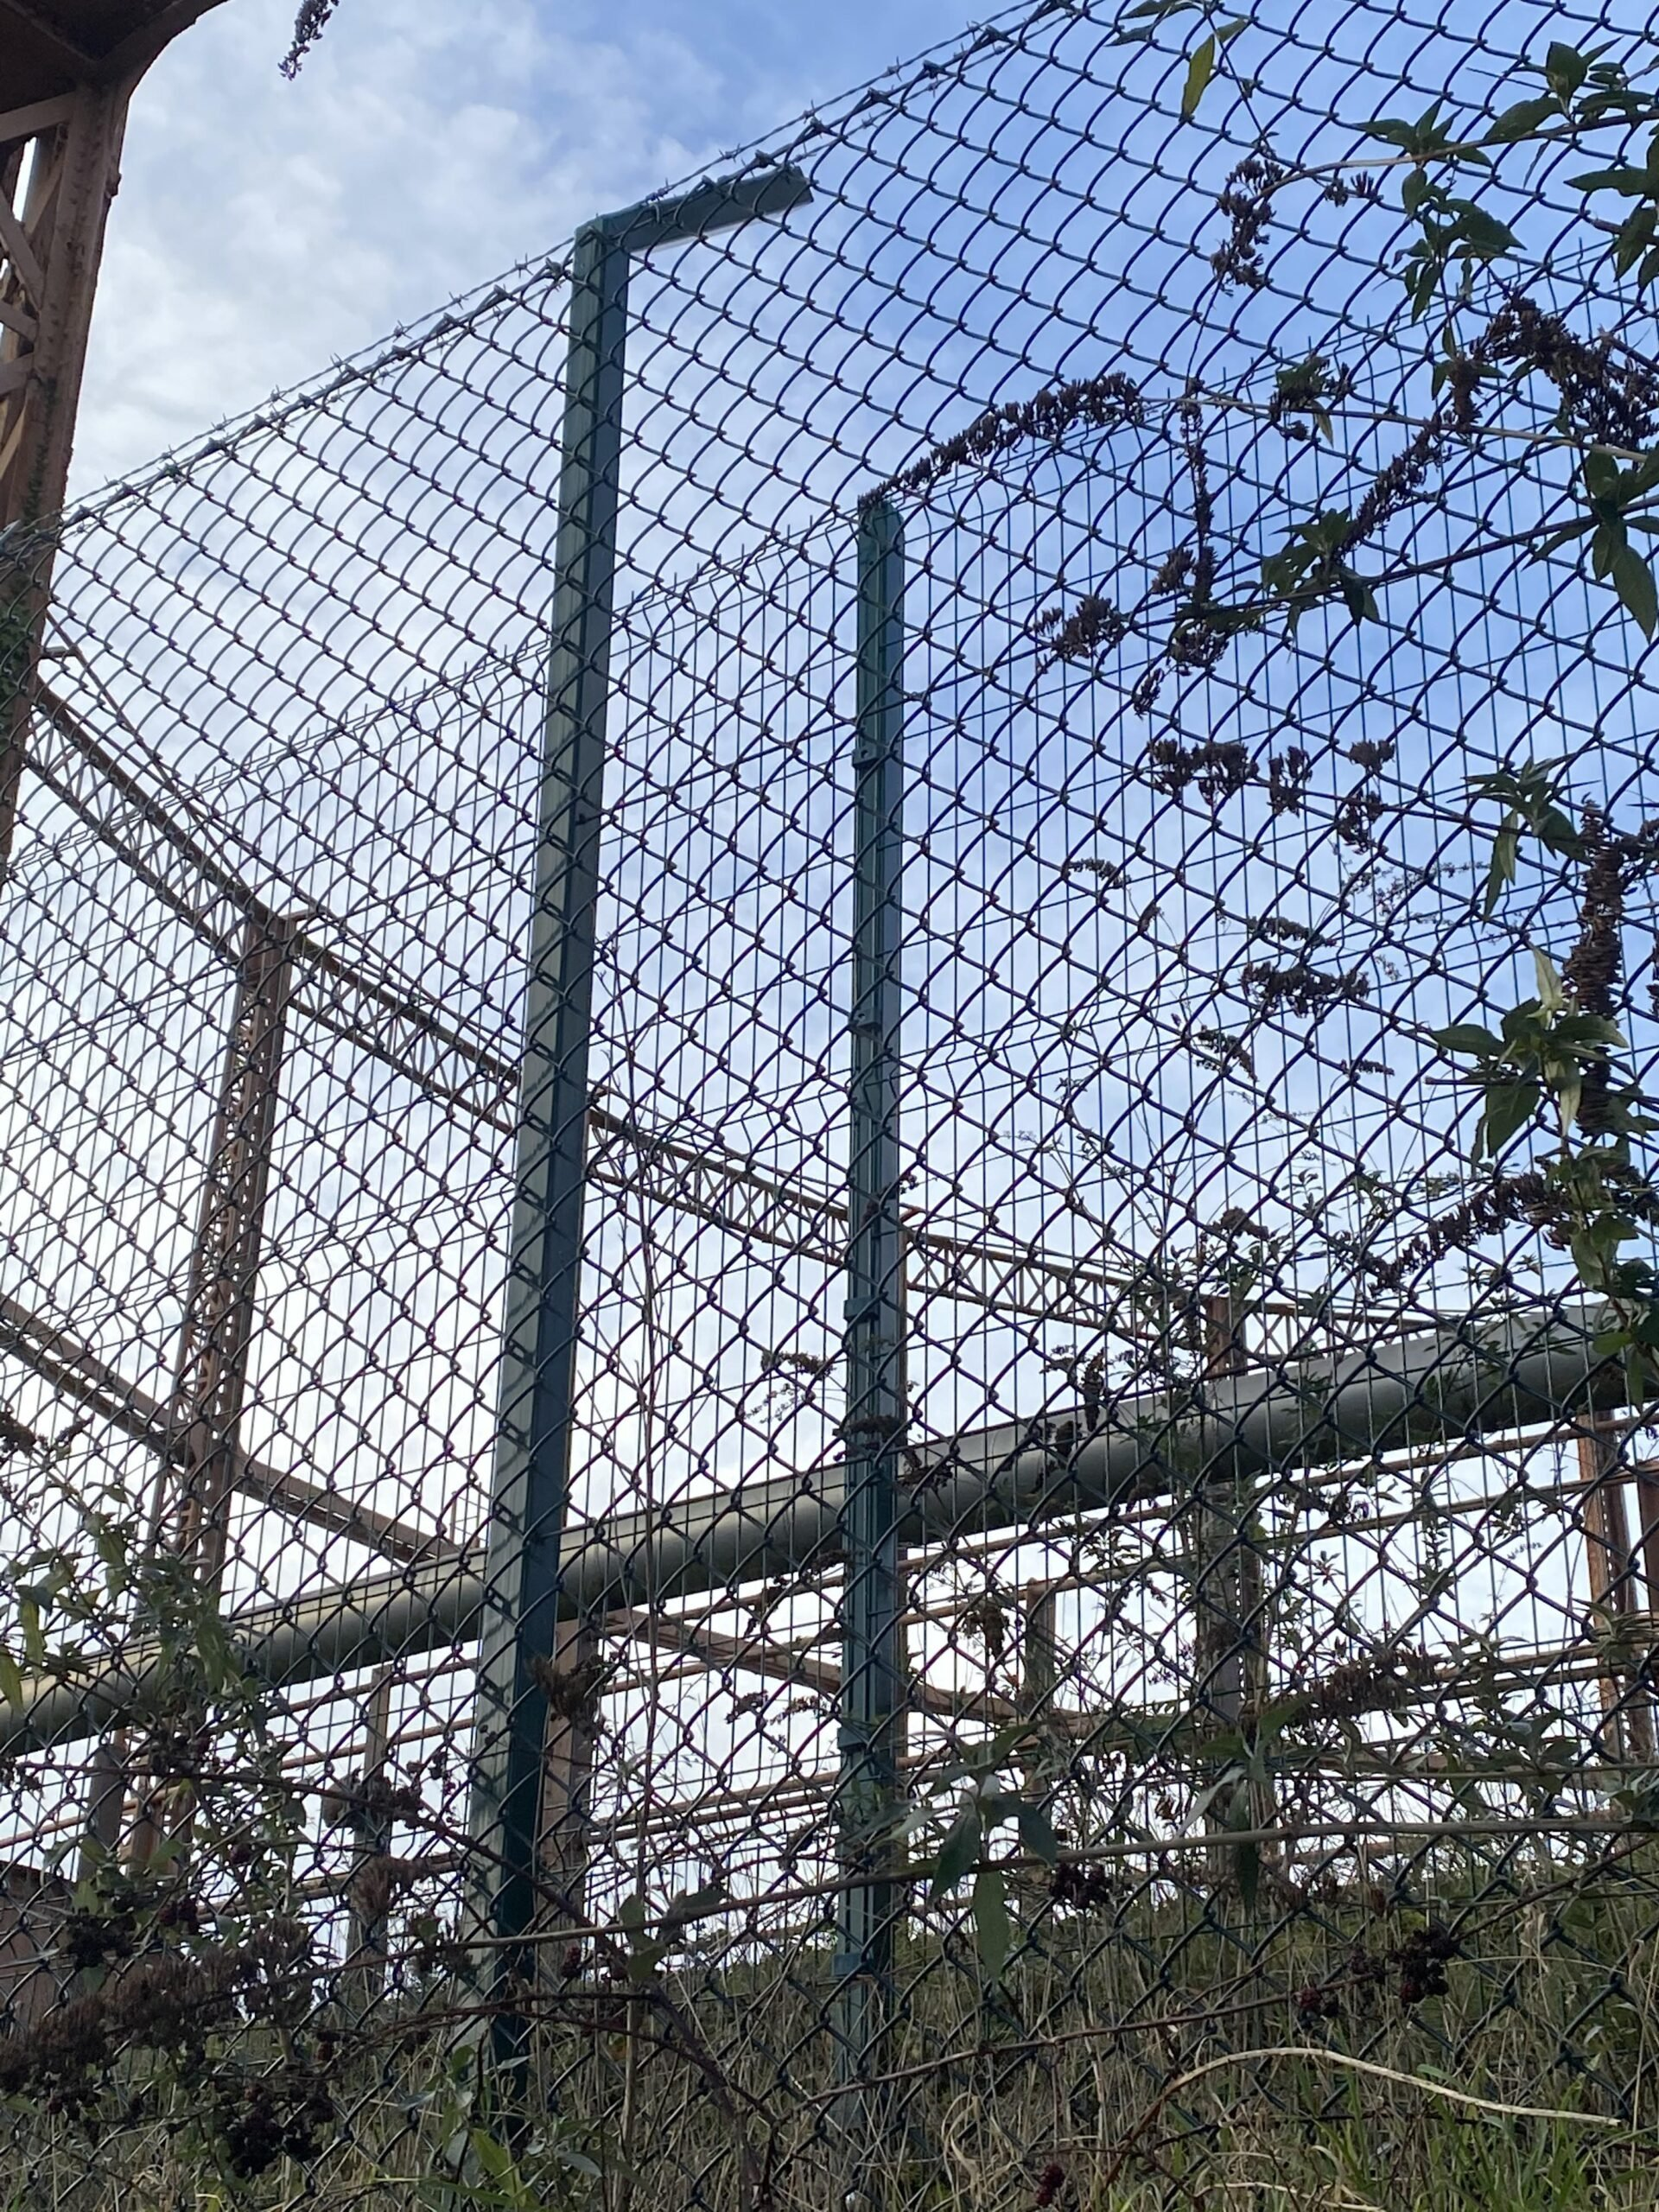 Chainlink and Weldmesh security fencing